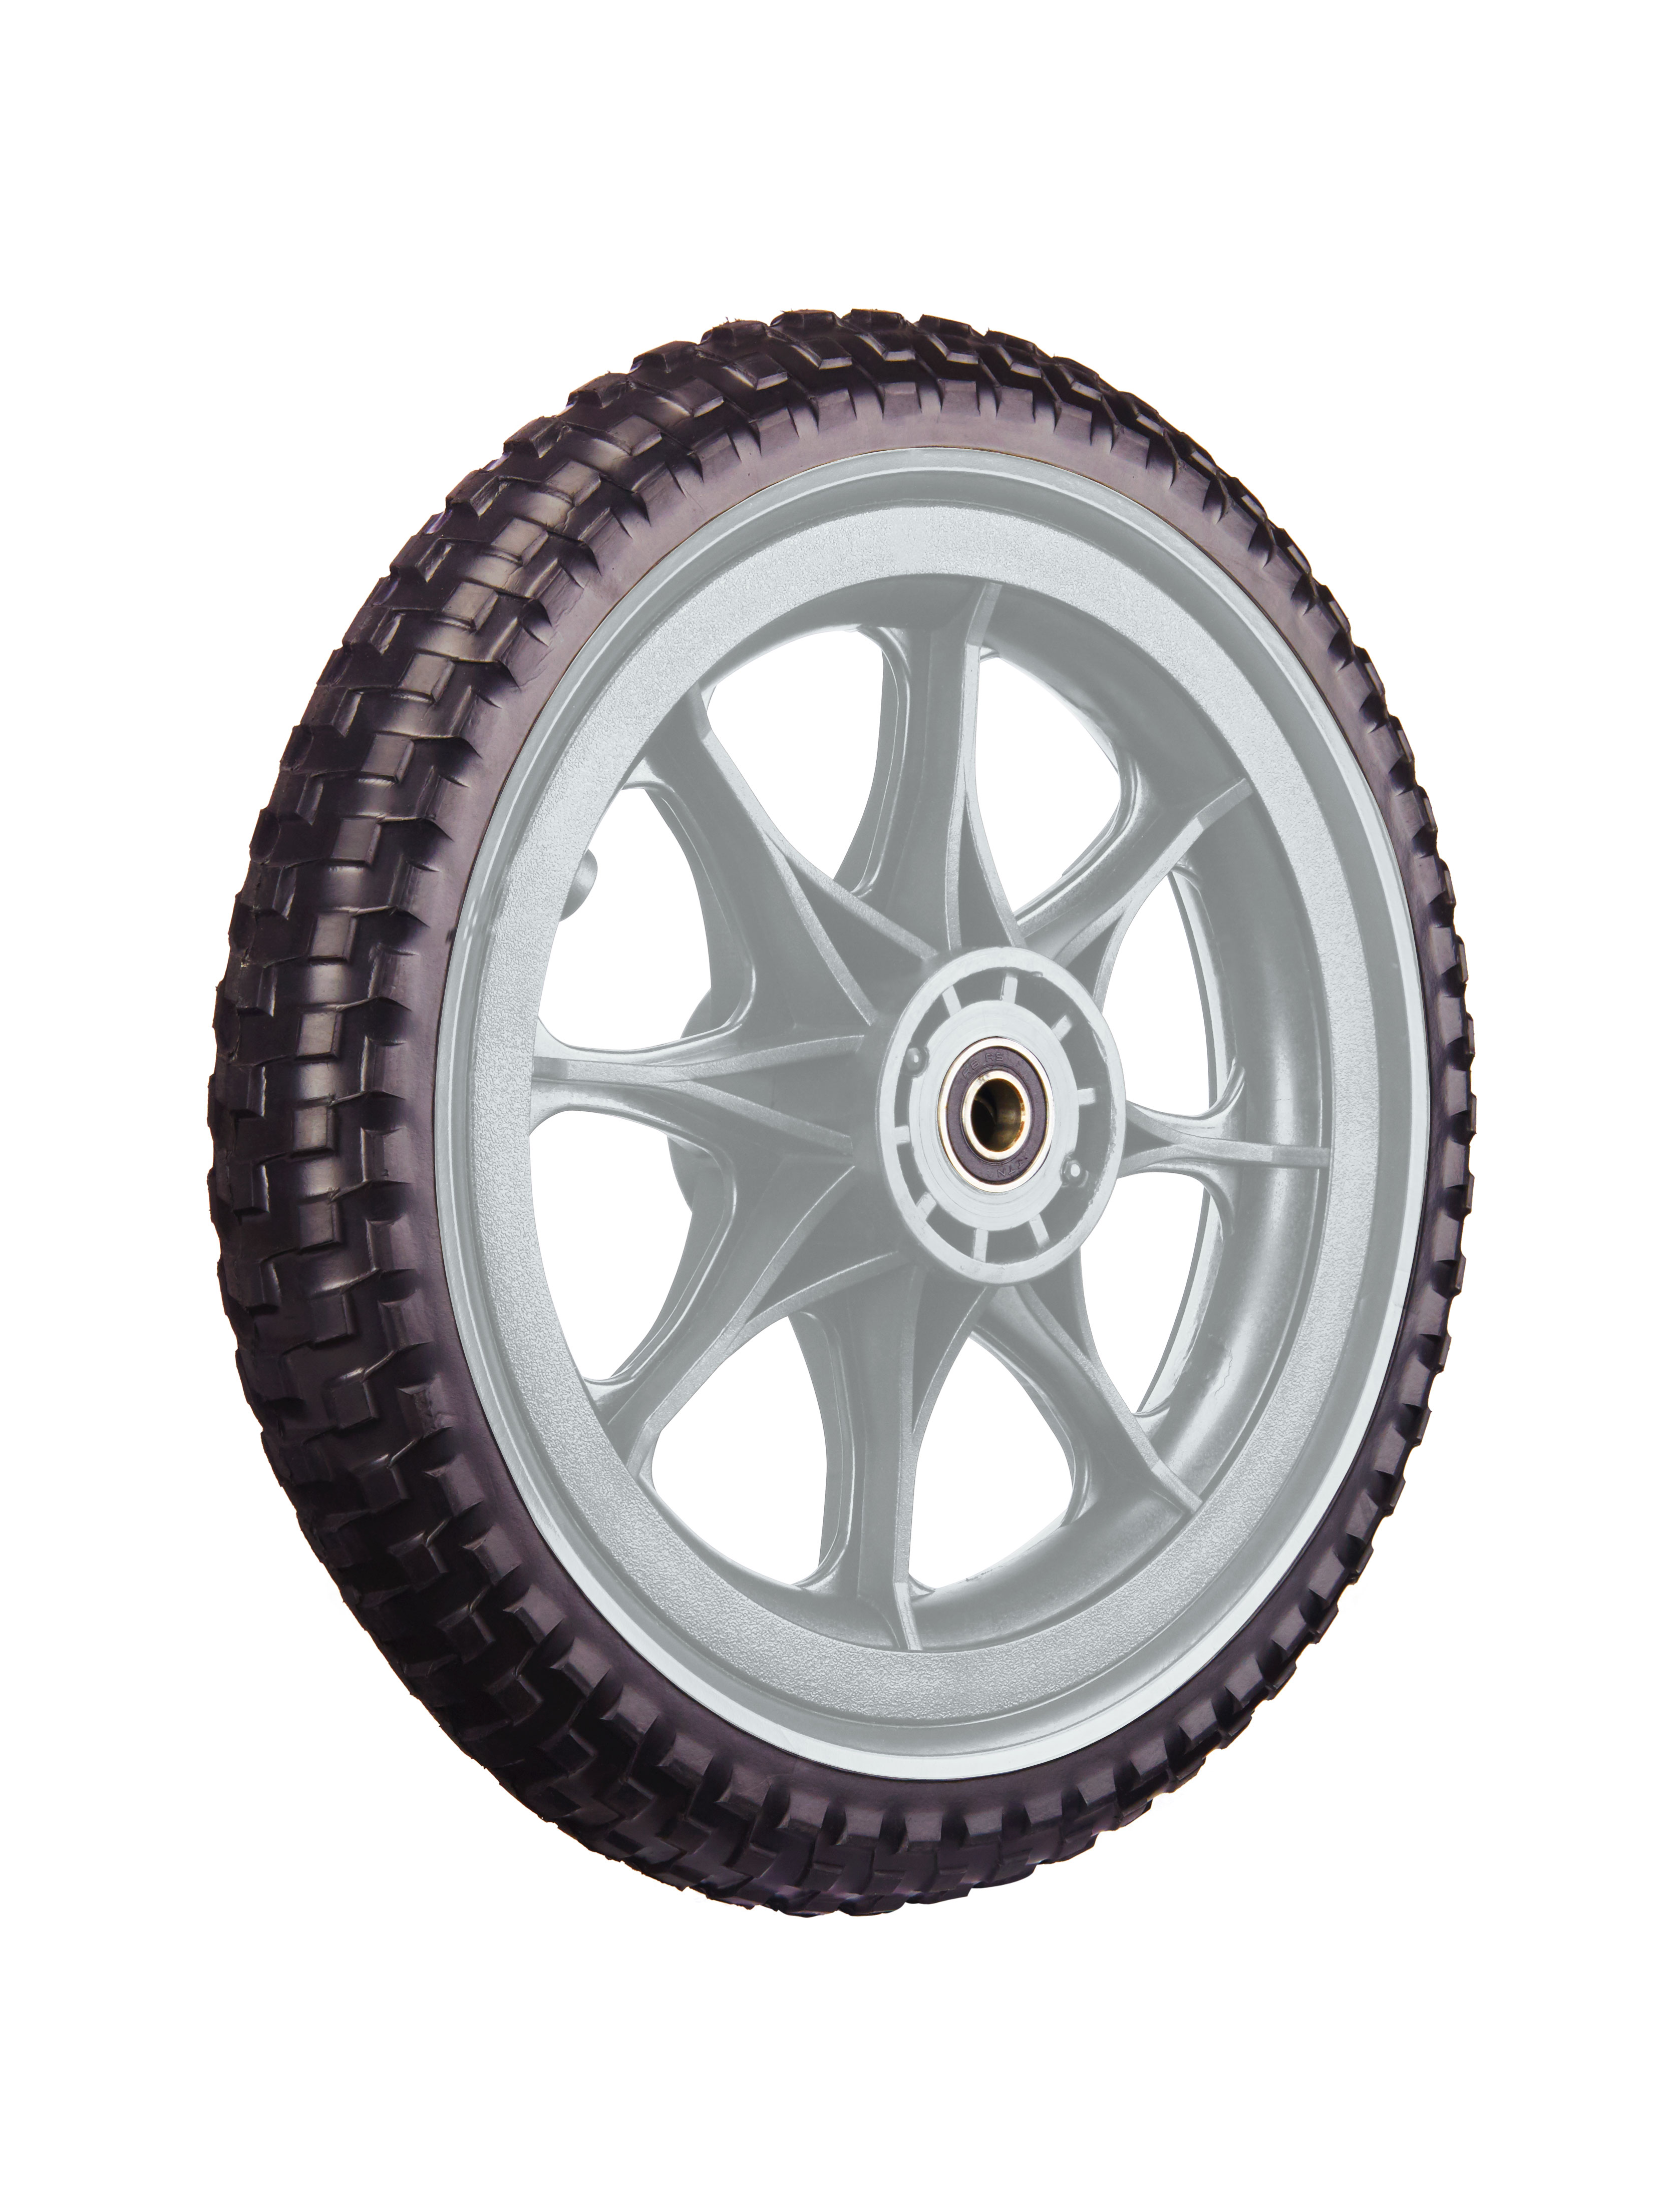 All-Terrain Tubeless Foam Wheel, Silver/Gray